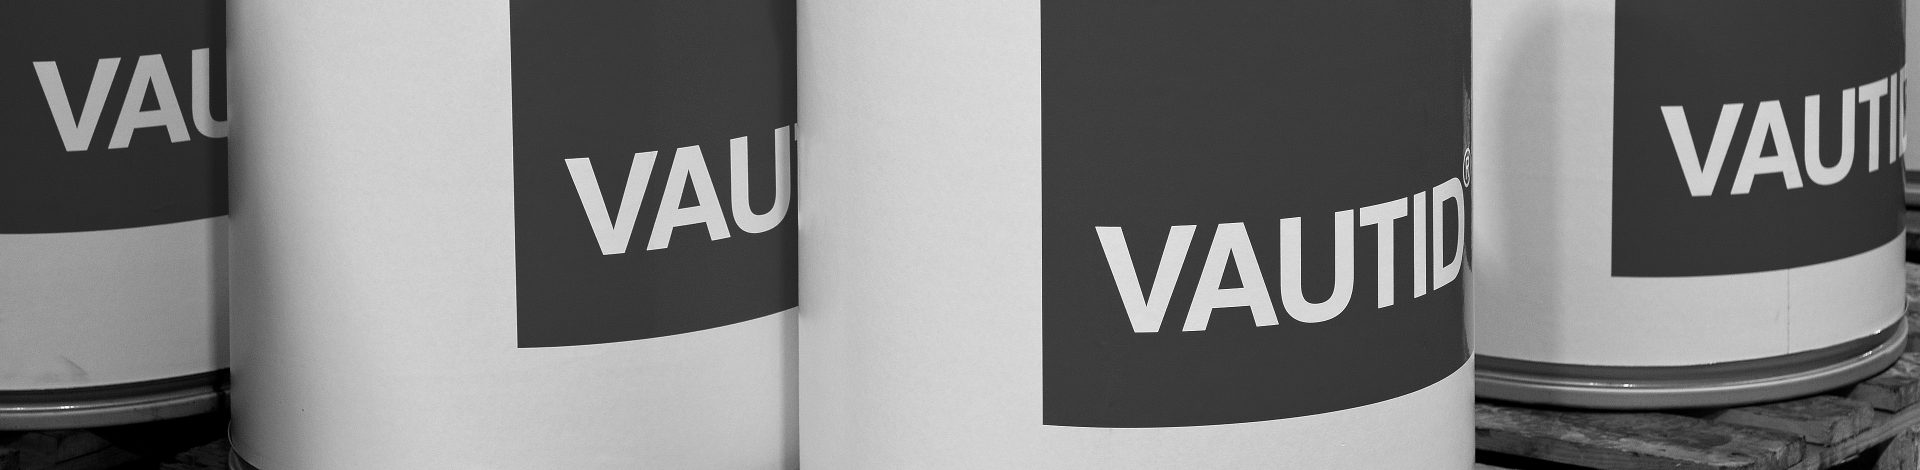 VAUTID Group & Sales Offices